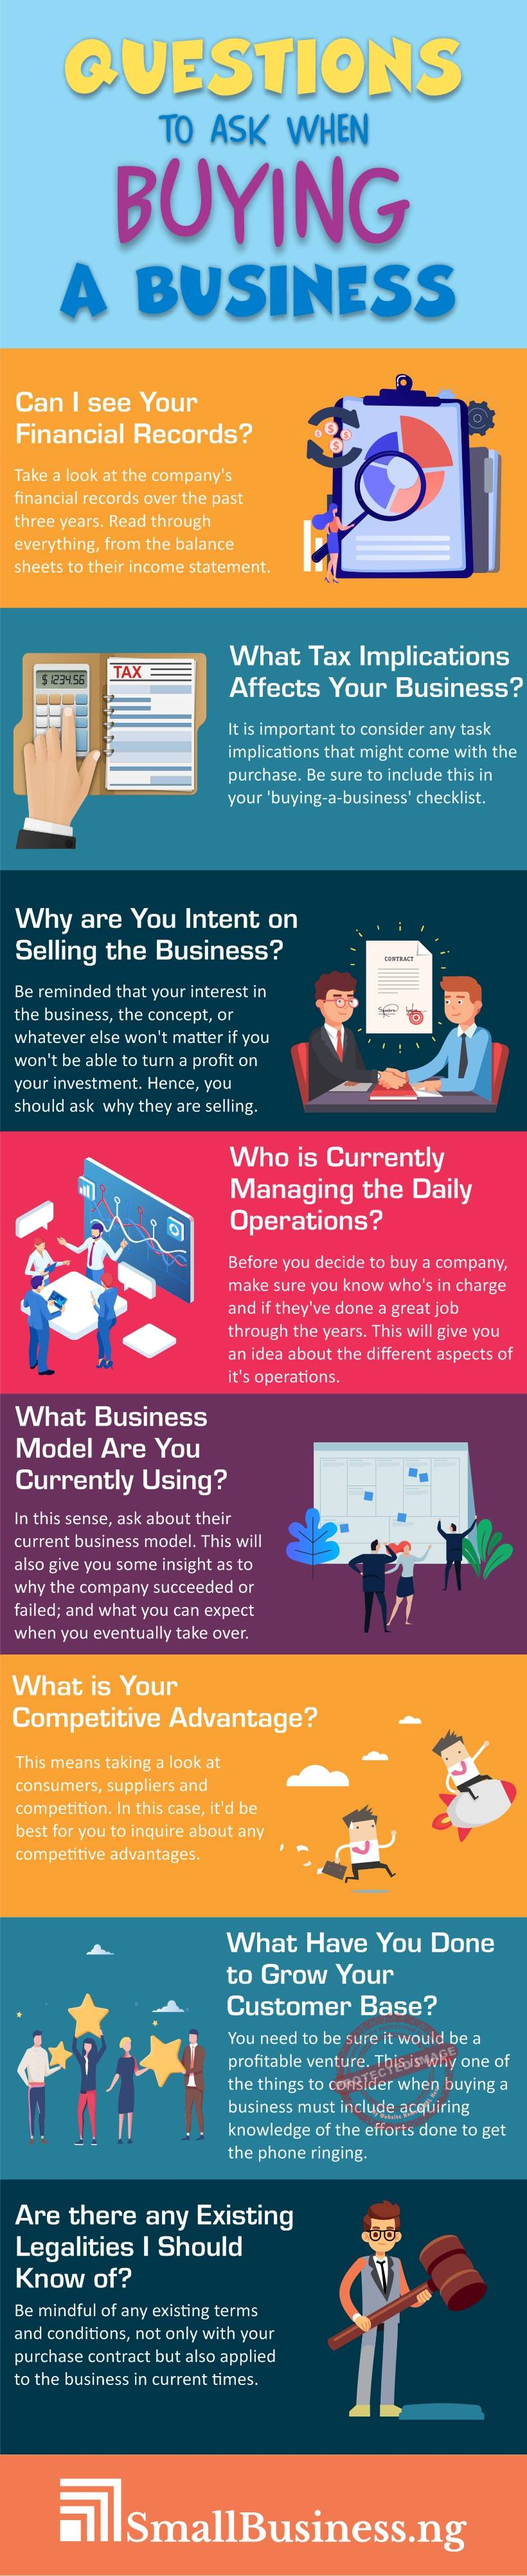 Questions to ask when buying a business infographic